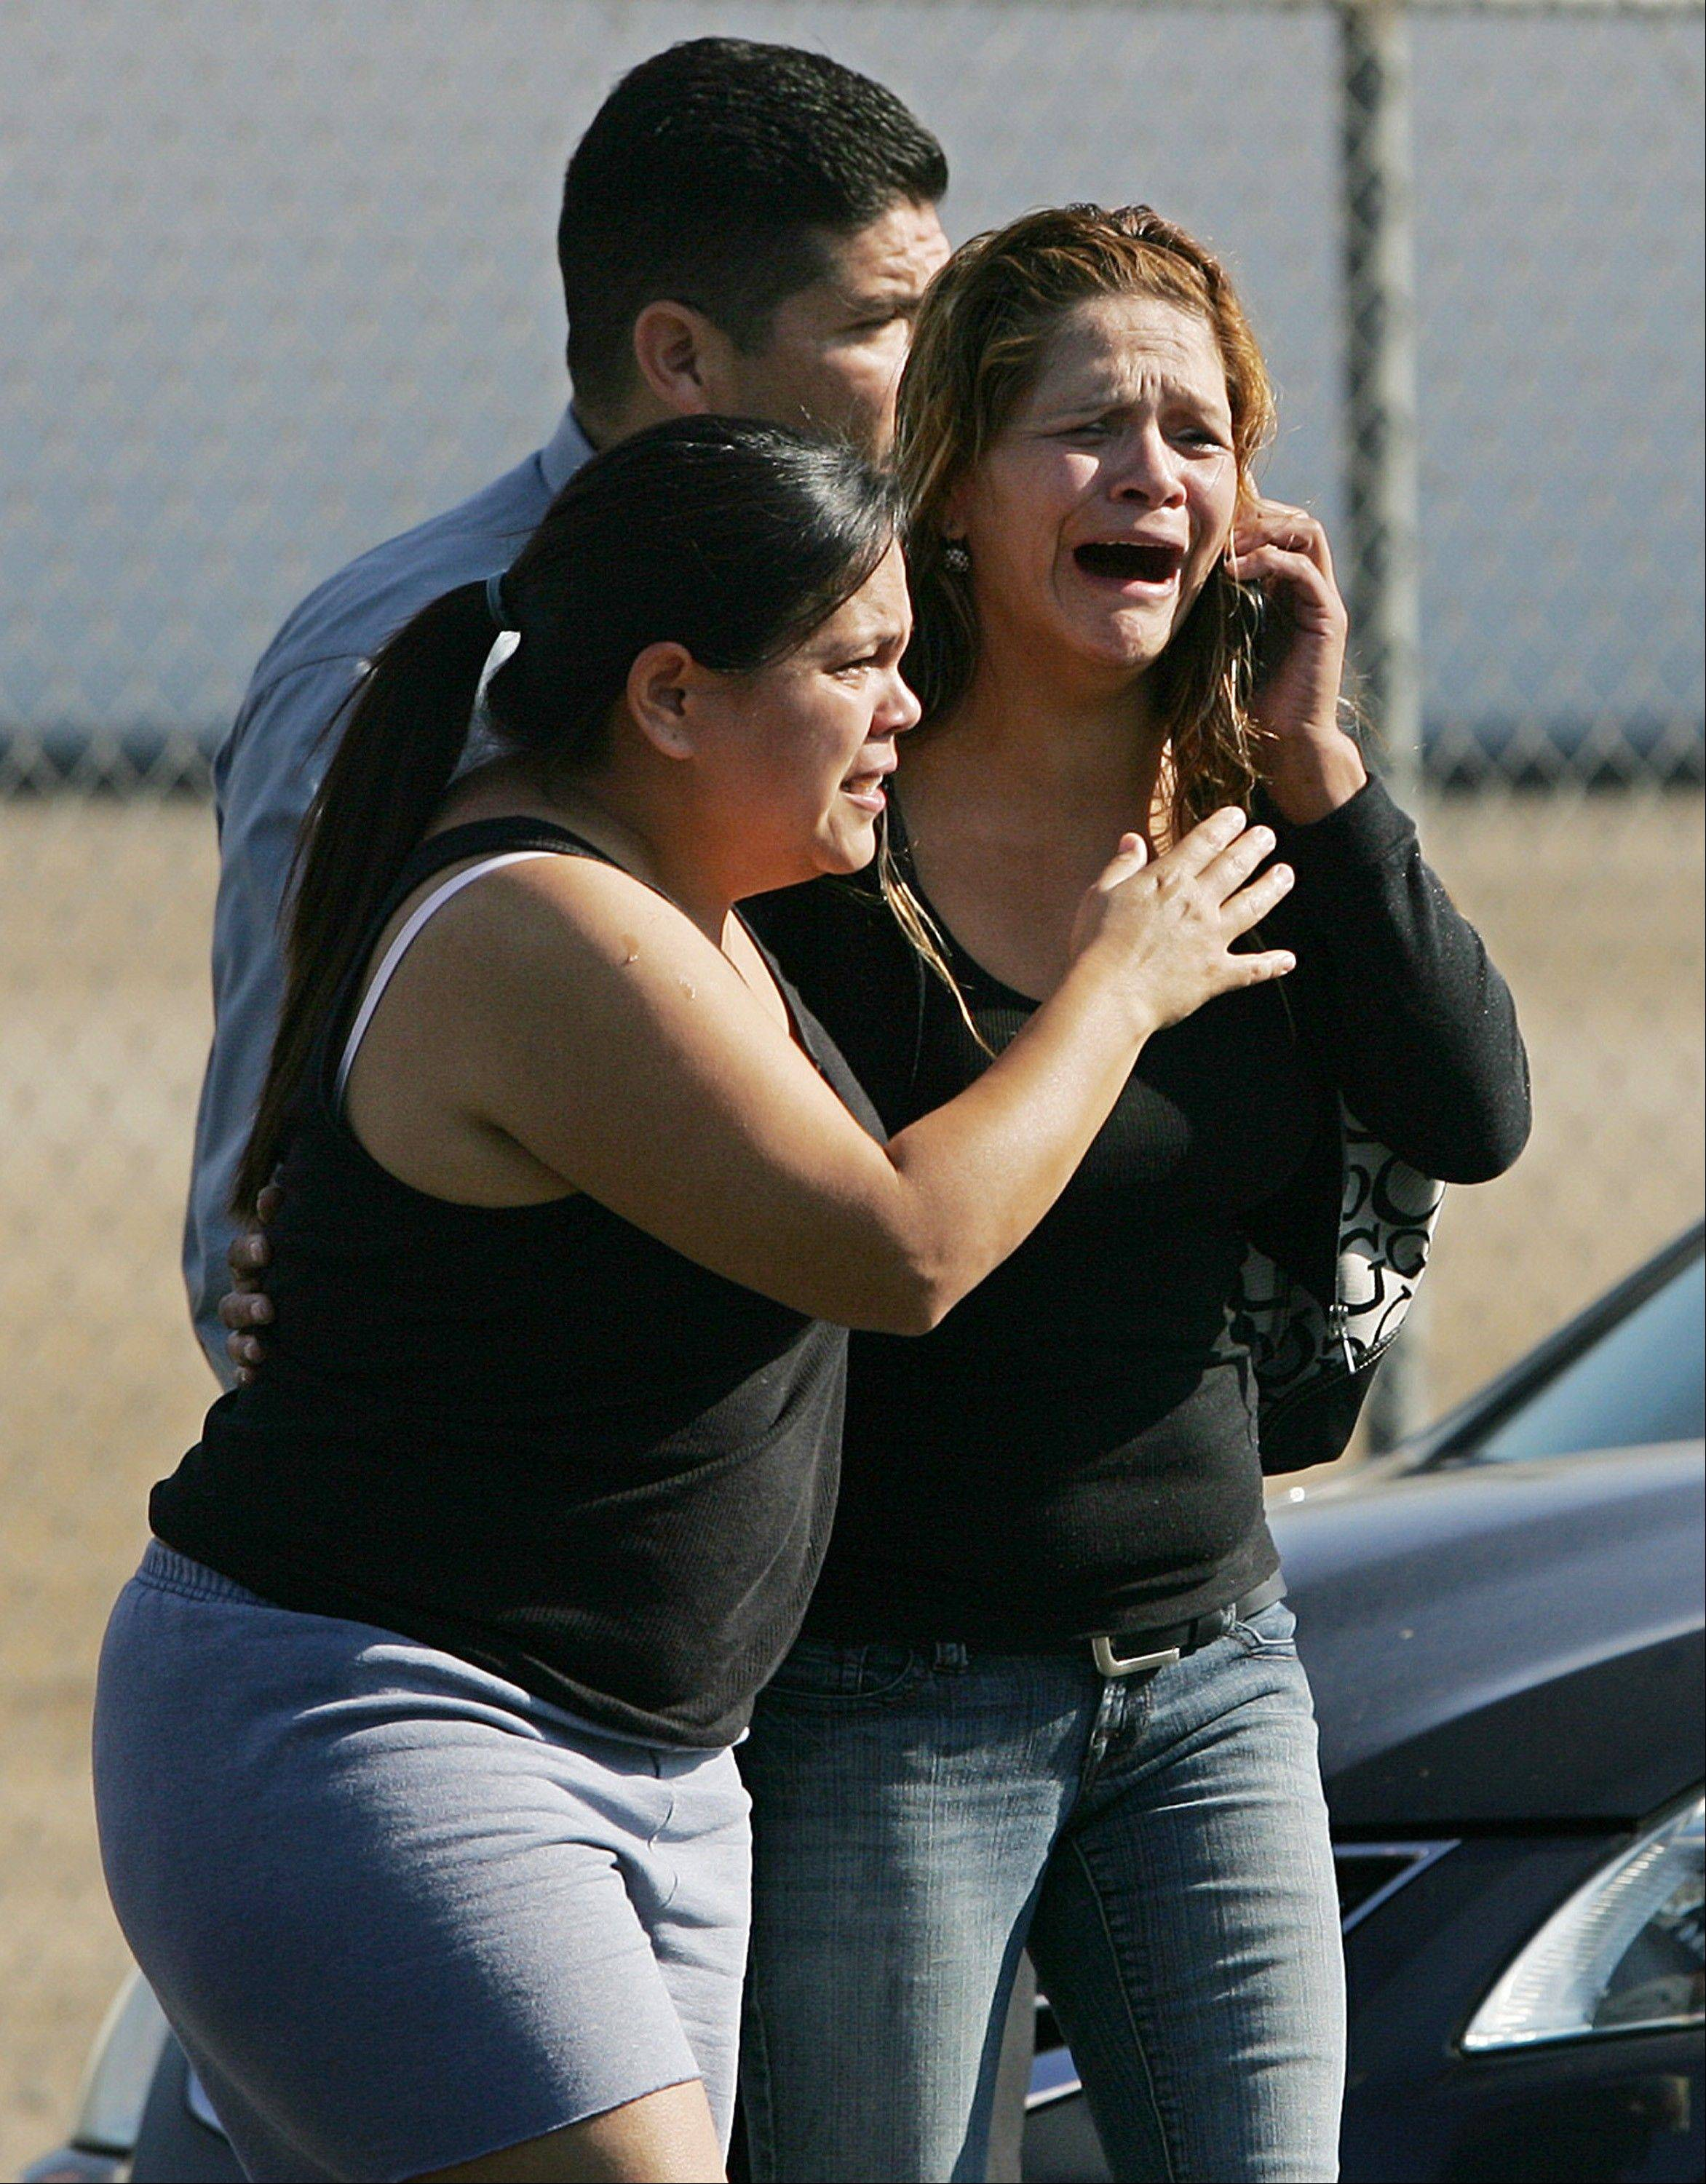 An unidentified woman cries as she�s rushed into a car after learning of a workplace shooting Tuesday, Nov. 6, 2012, in Fresno, Calif. A parolee who worked at a California chicken processing plant opened fire at the business on Tuesday, killing one person and wounding three others, before shooting himself, police said.